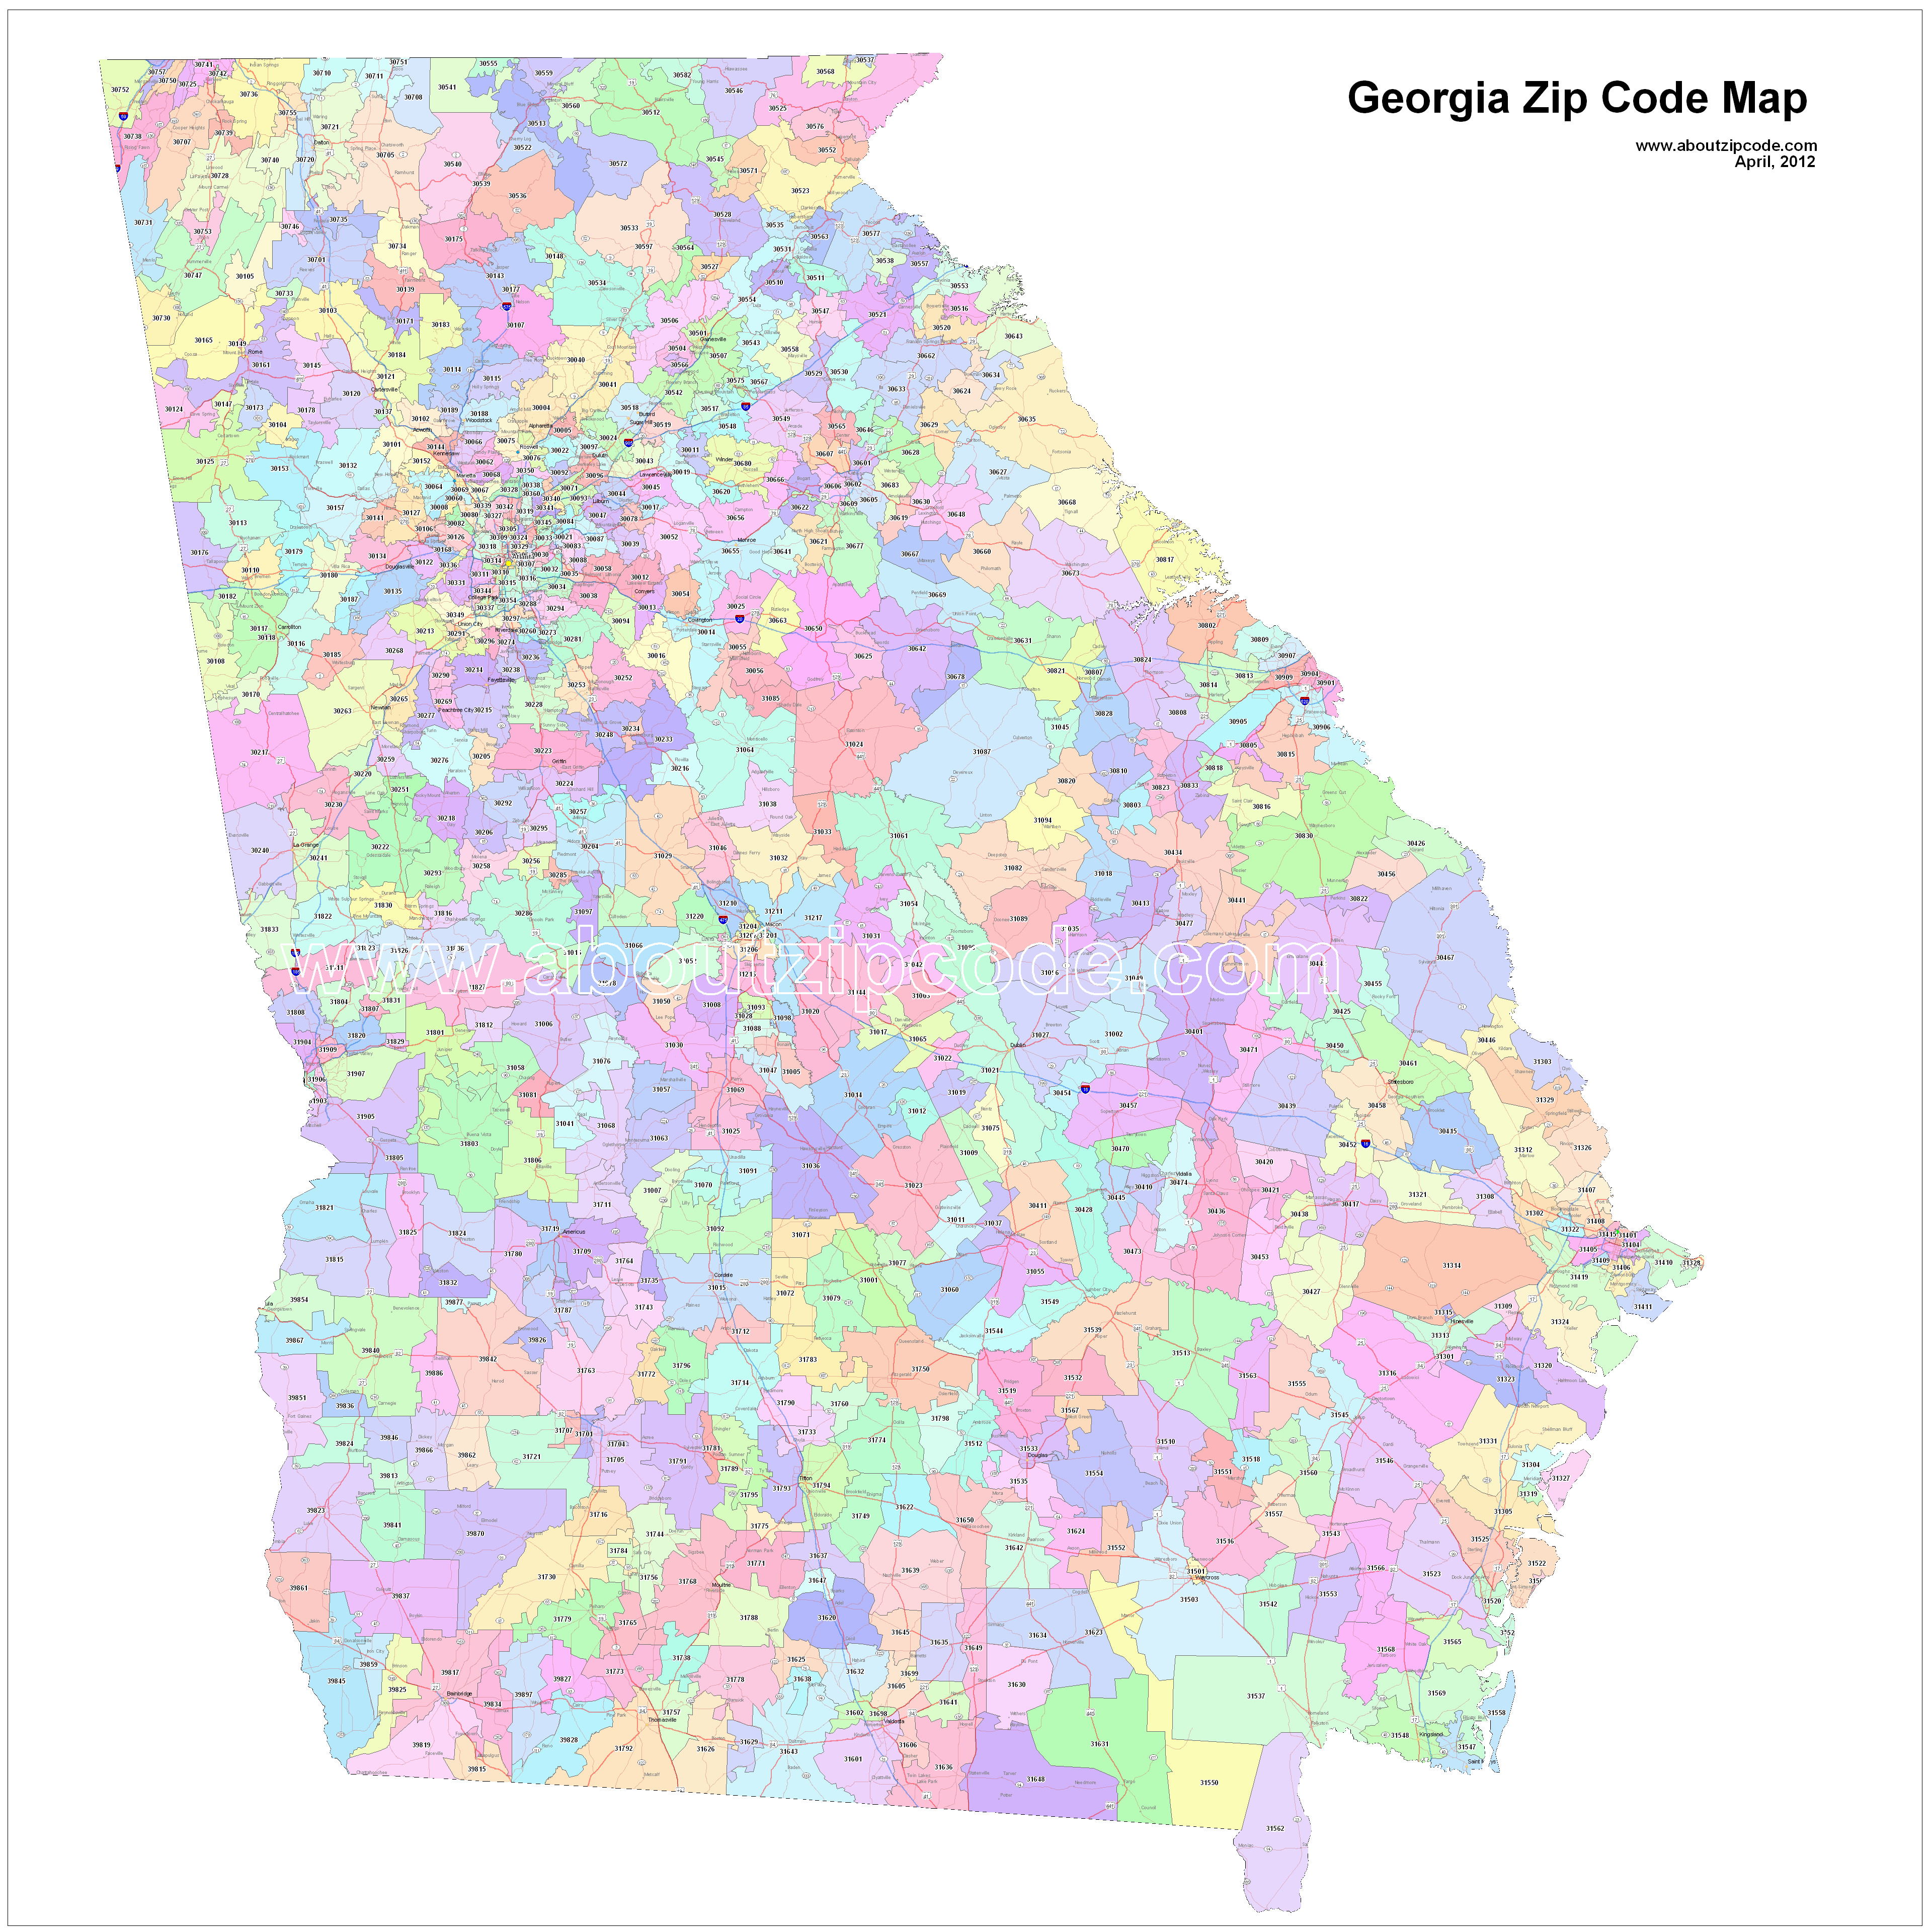 Printable Zip Code Map Best Of Georgia Zip Code Maps Free Georgia Zip Code Maps